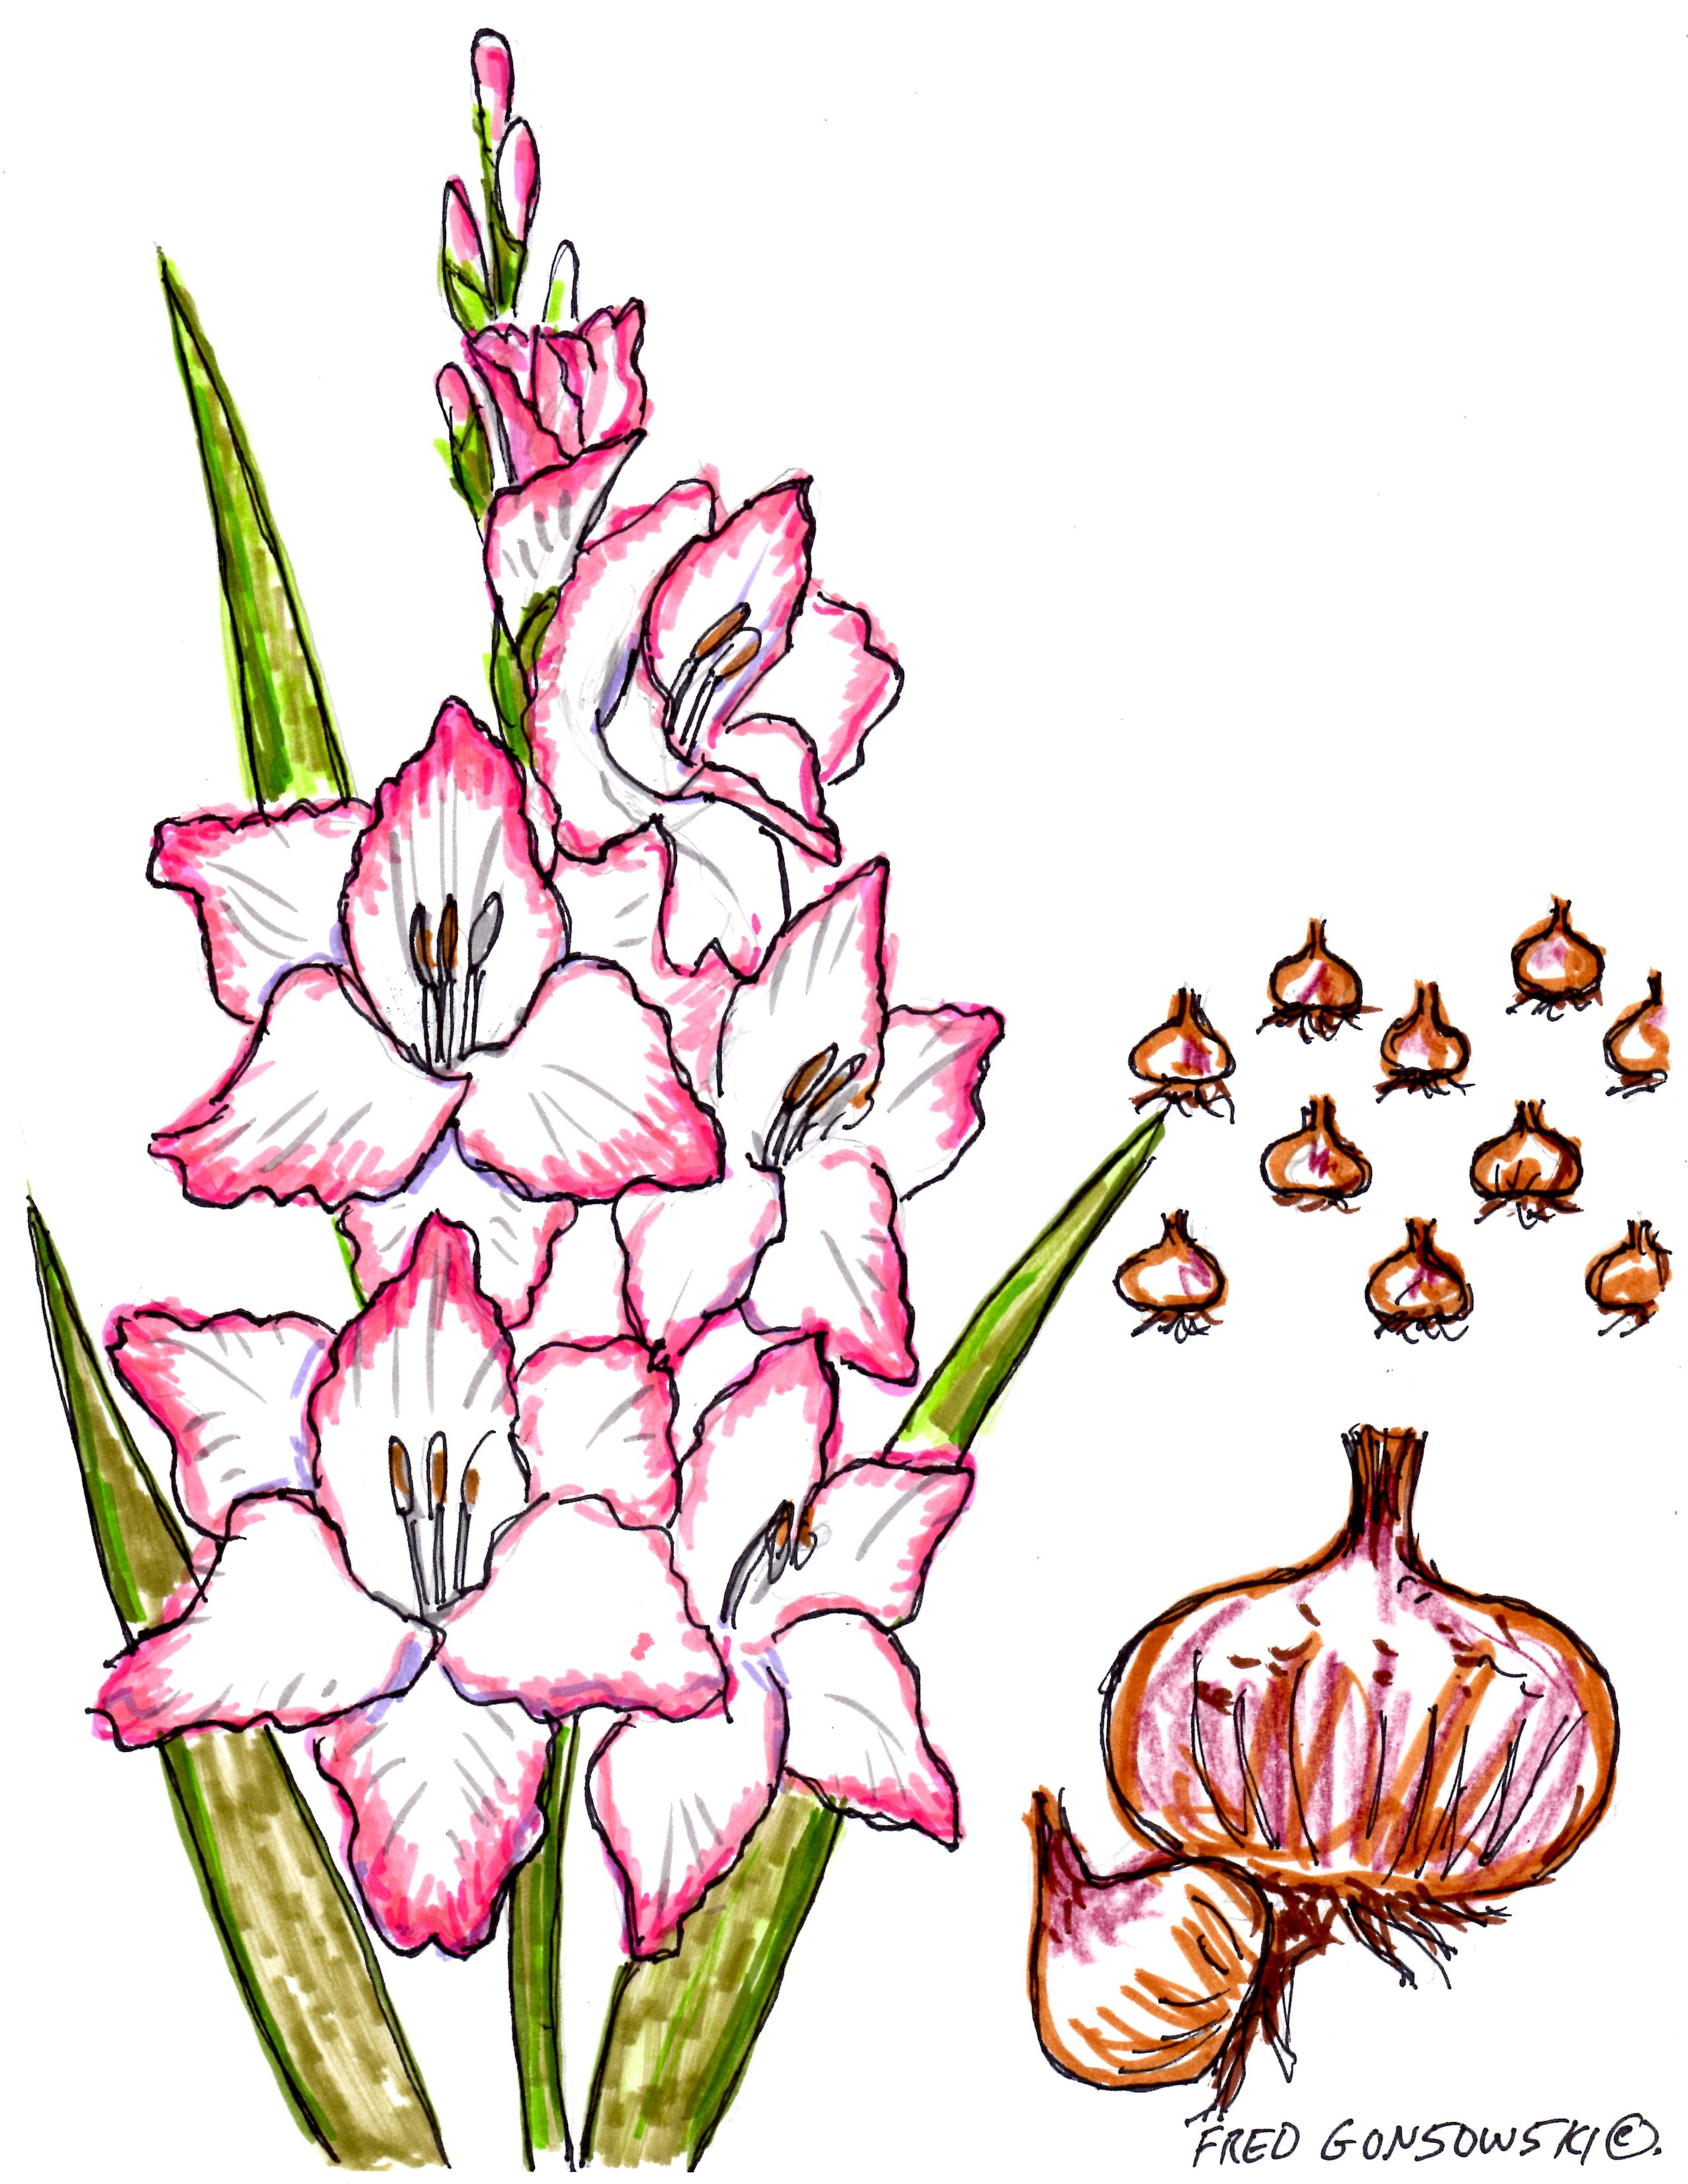 Plant Some Gladiolus In Your Garden They Make Great Summer Flower Arrangements Fred Gonsowski Garden Home